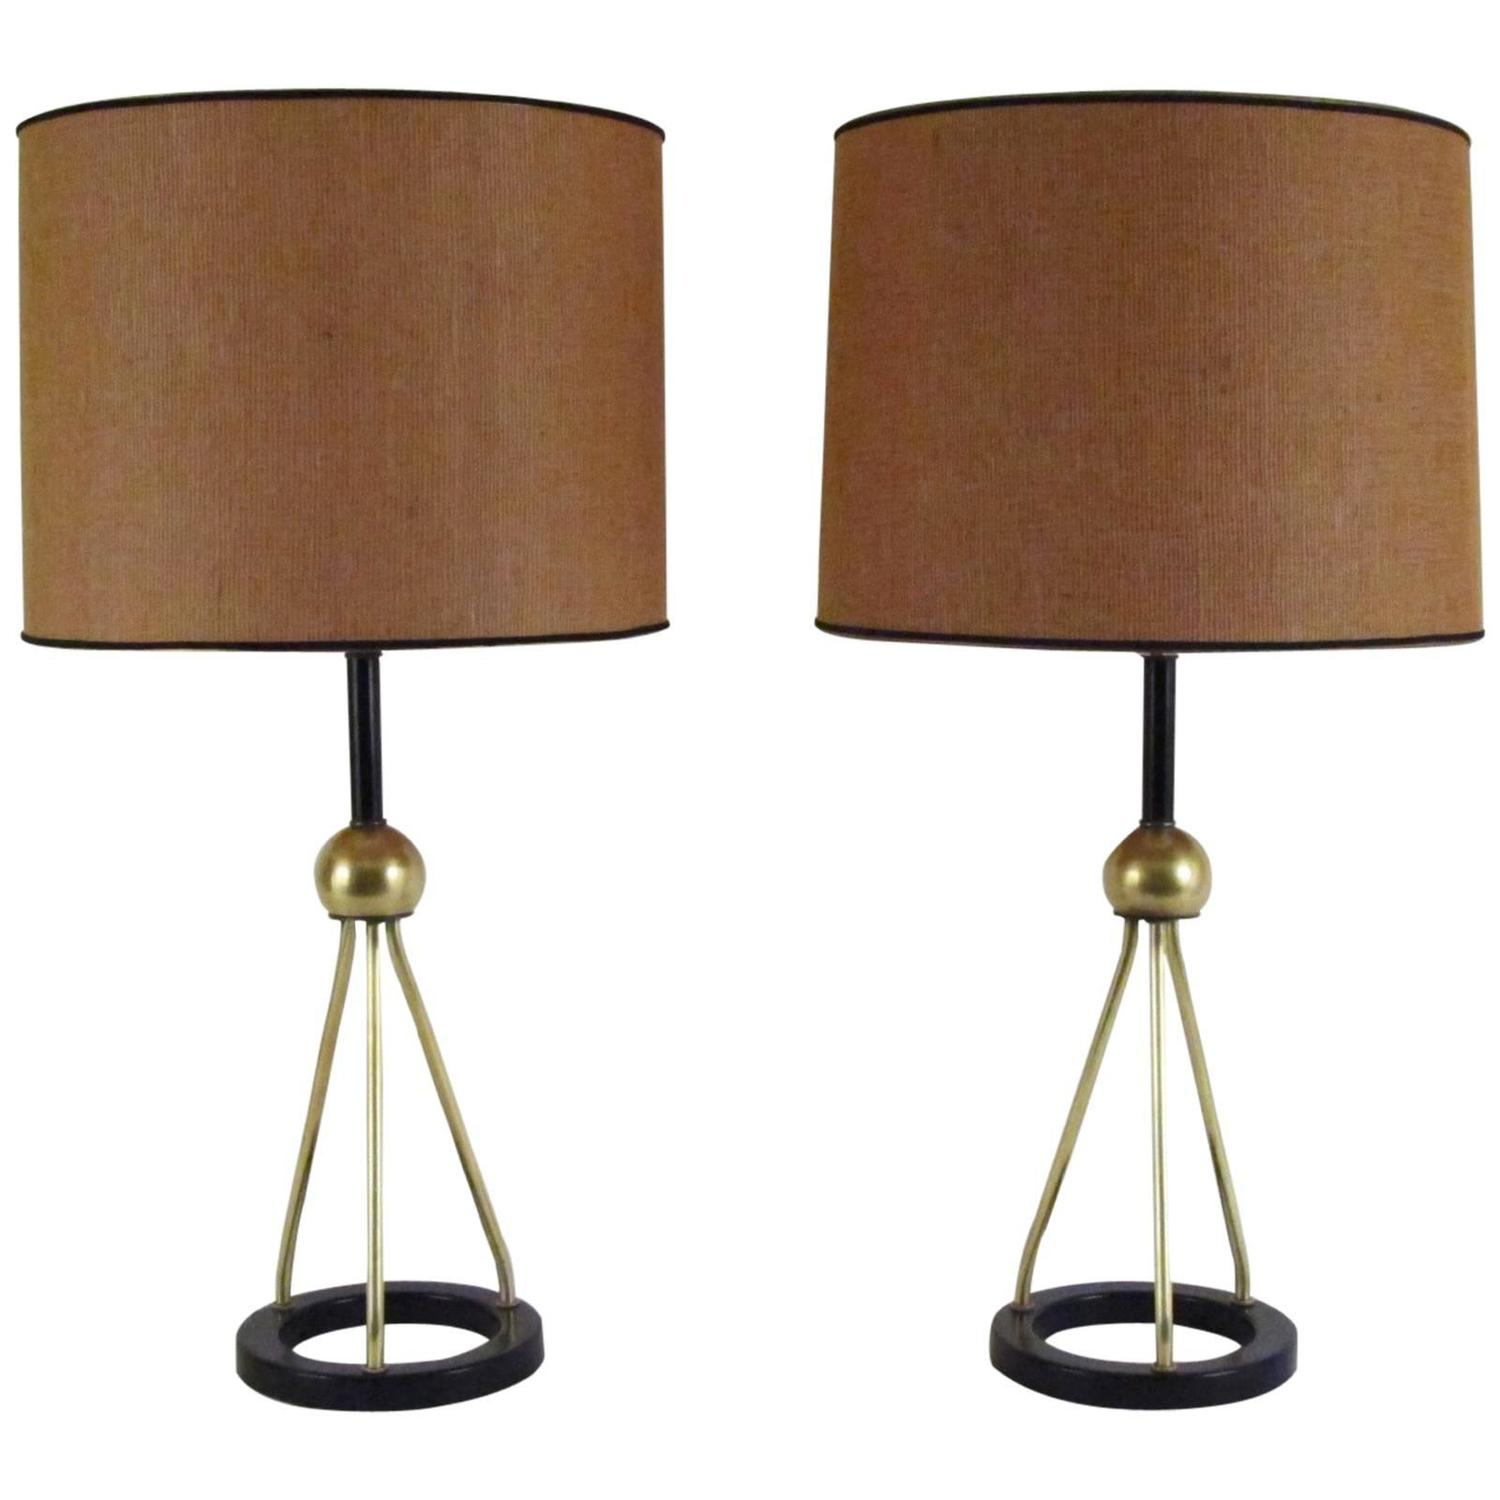 pair of 1950s modern table lamps at 1stdibs. Black Bedroom Furniture Sets. Home Design Ideas